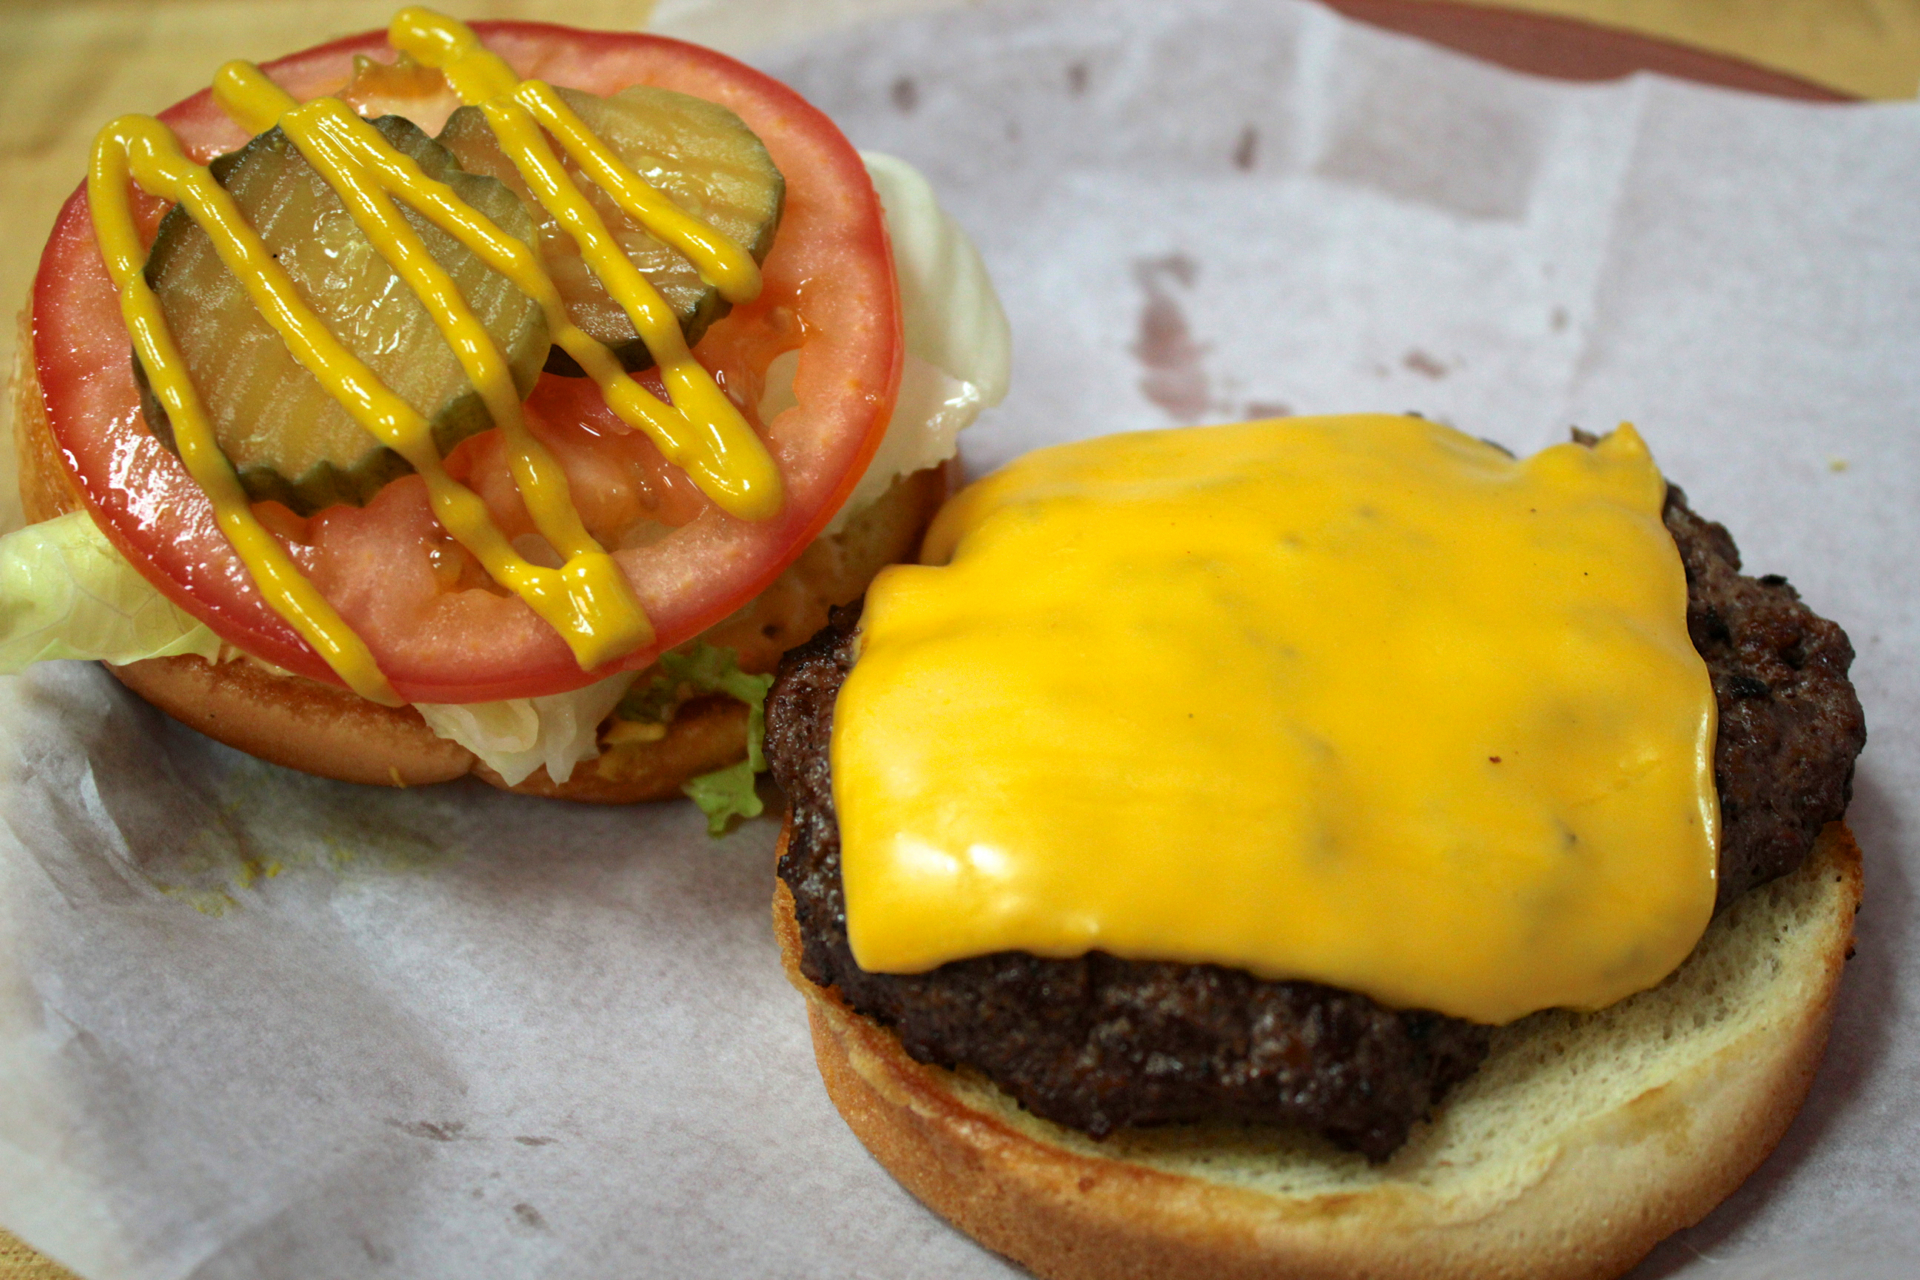 A Cheeseburger With Toppings From The Condiment Bar. (Jeff Cianci)